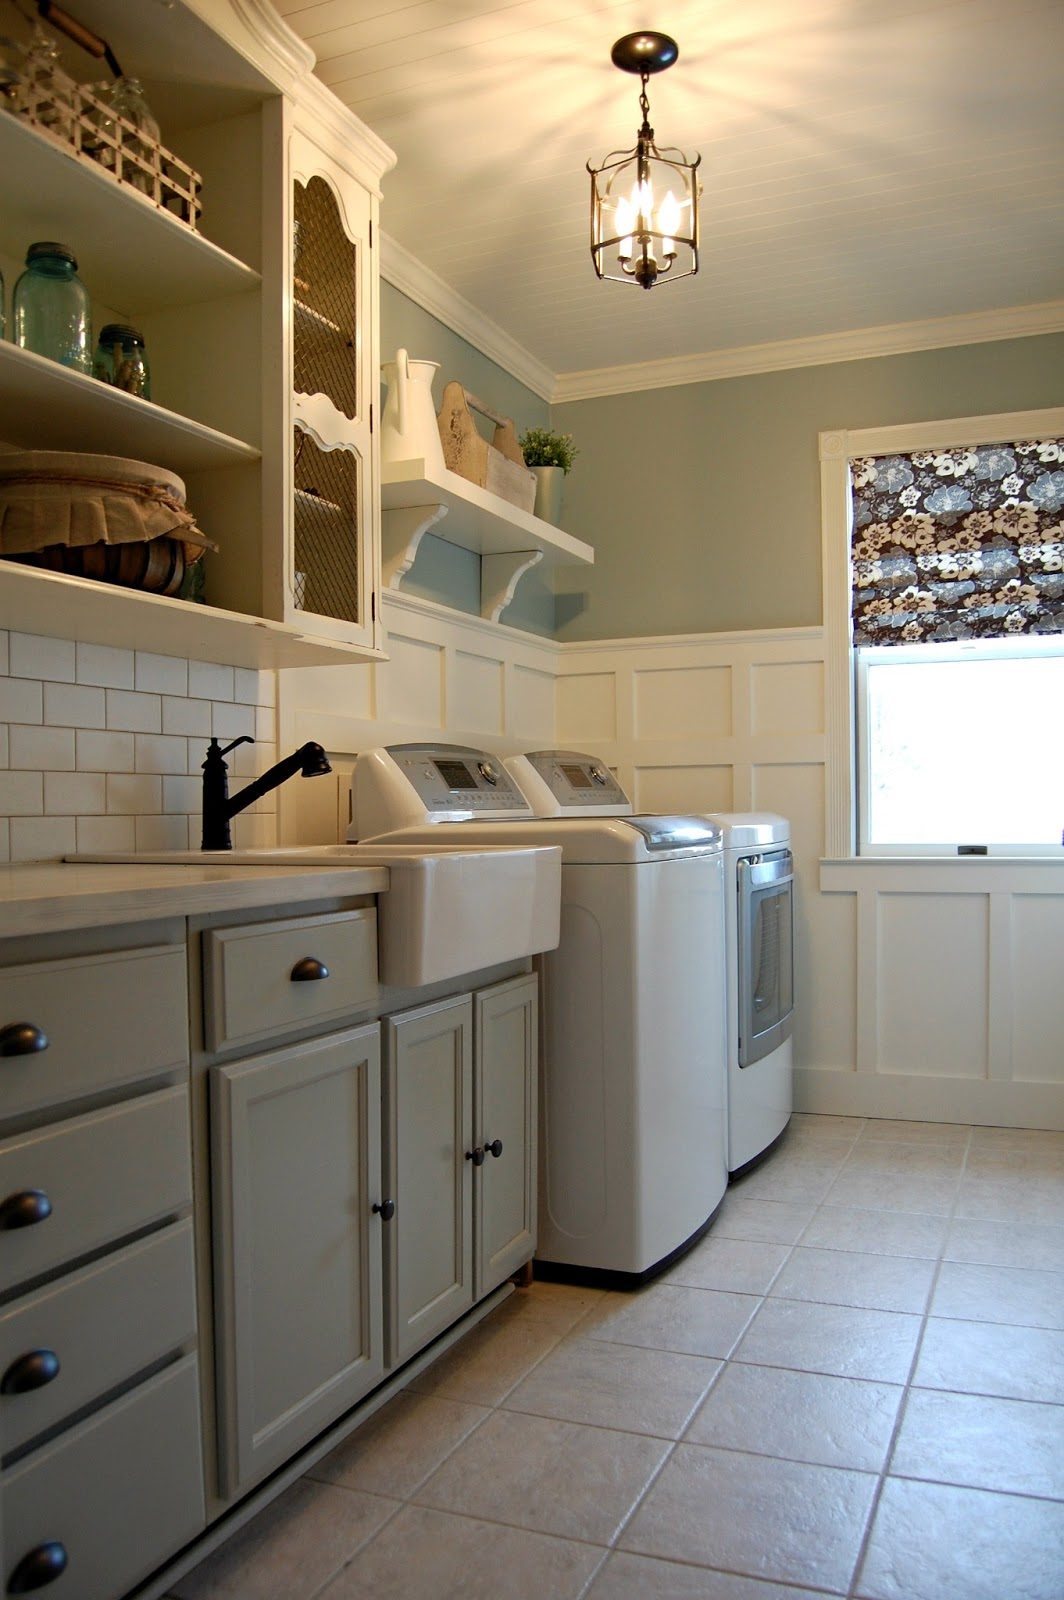 Our New Washer Dryer Laundry Room Goals The Inspired Room